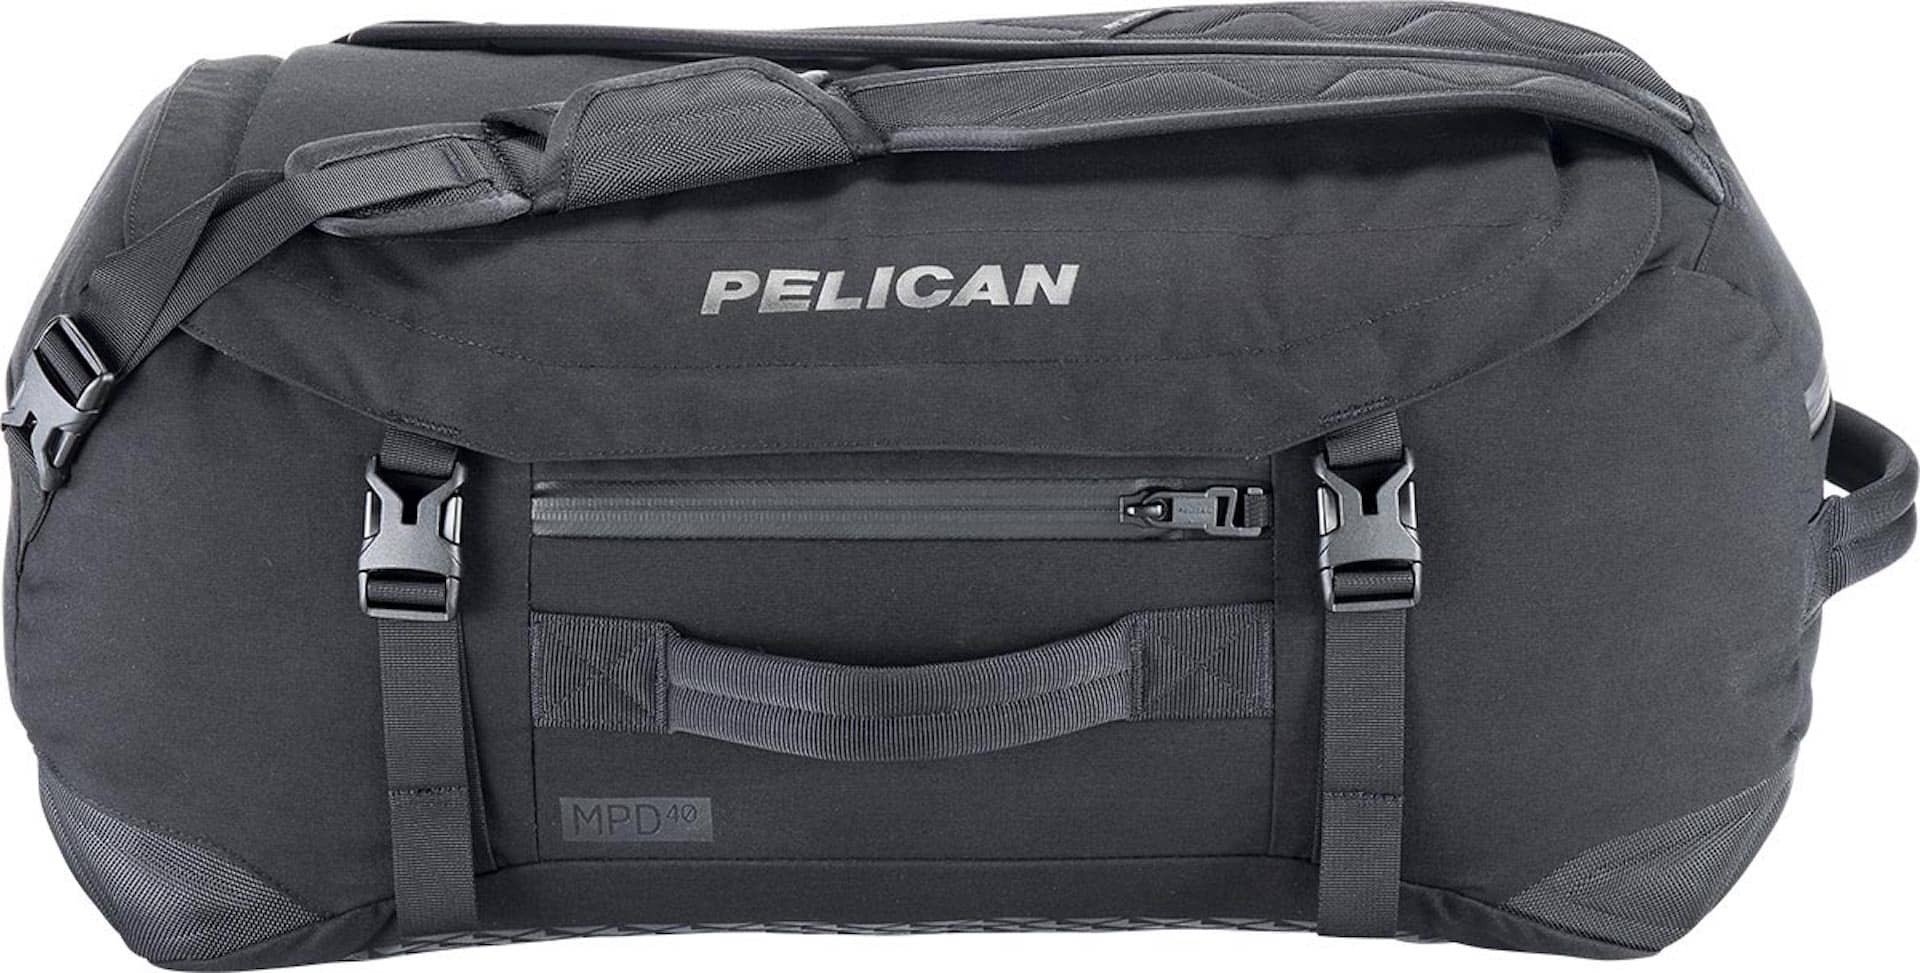 Best Camera Bag for Travel - Pelican Carry On Luggage Duffel Bag